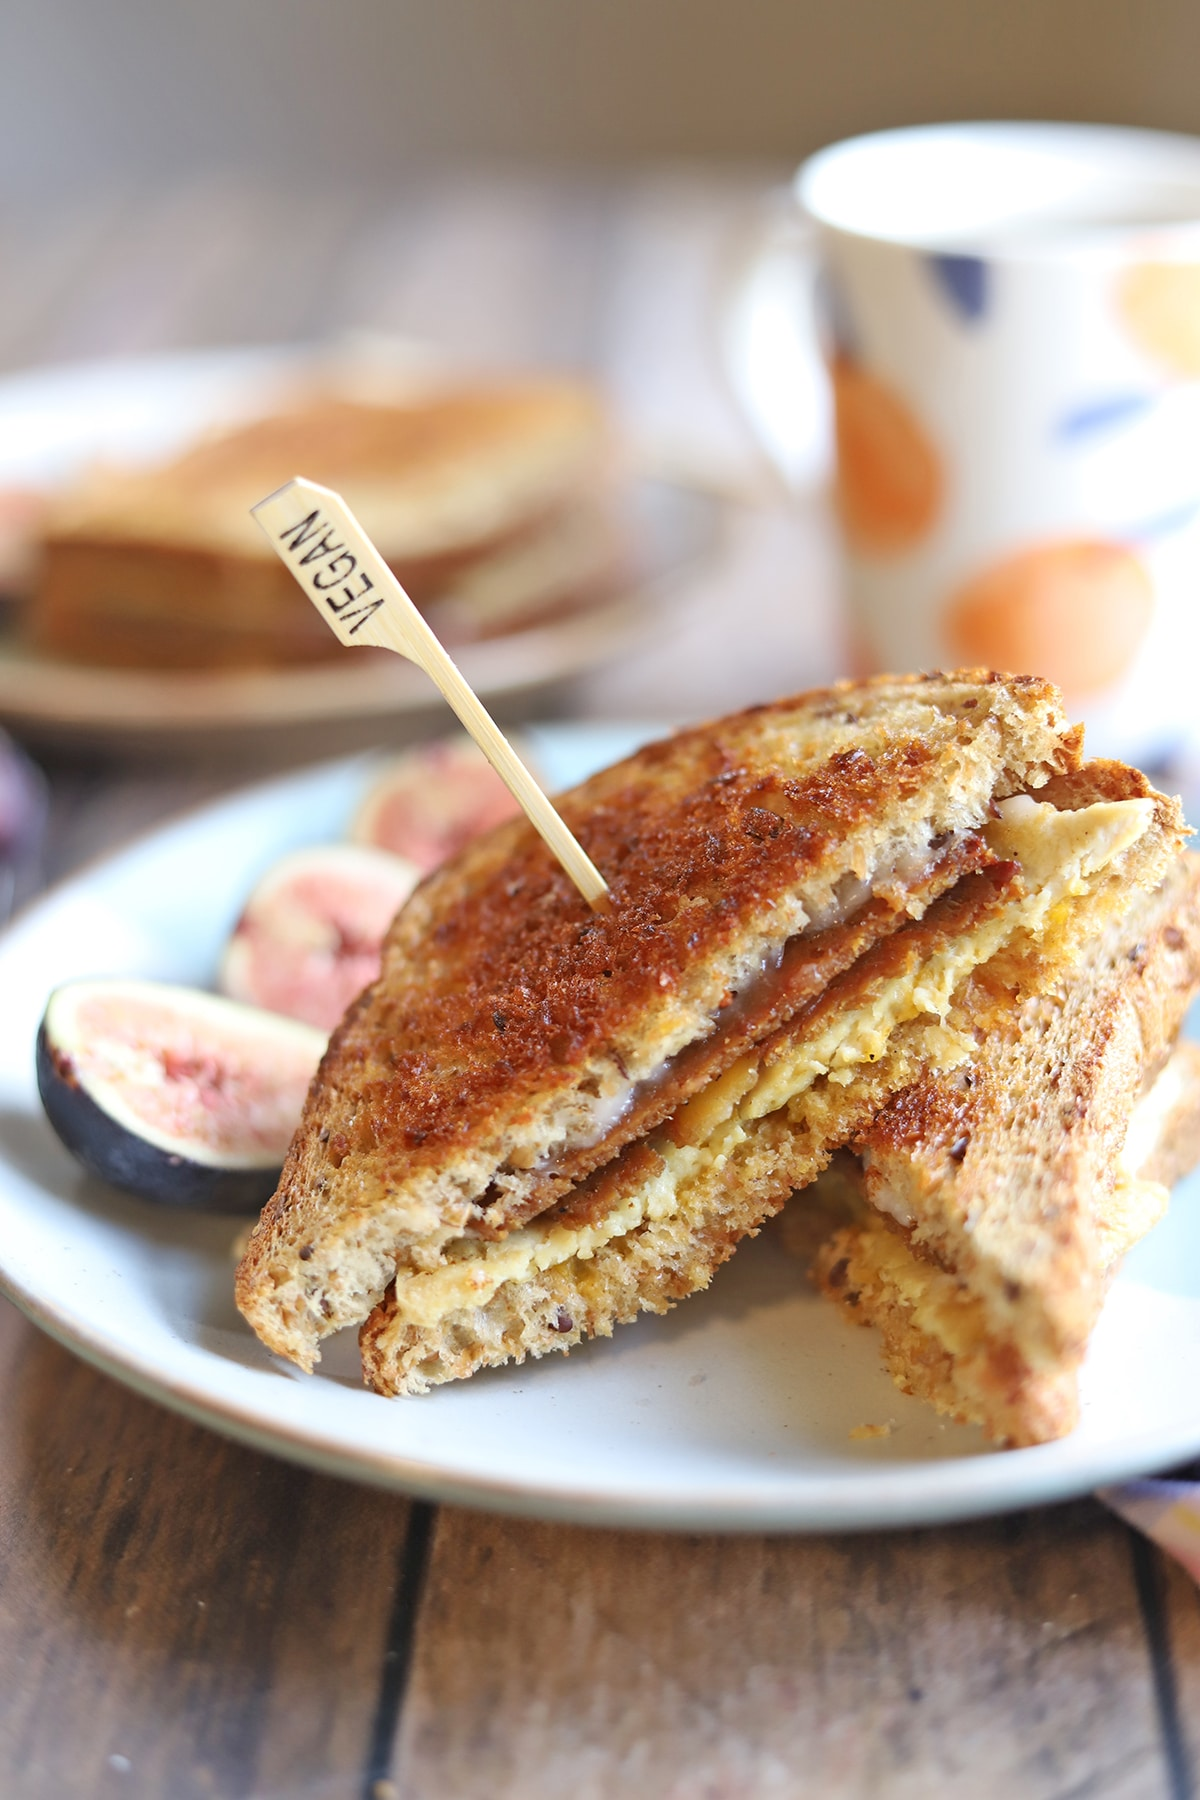 Toasted sandwich on plate with figs.